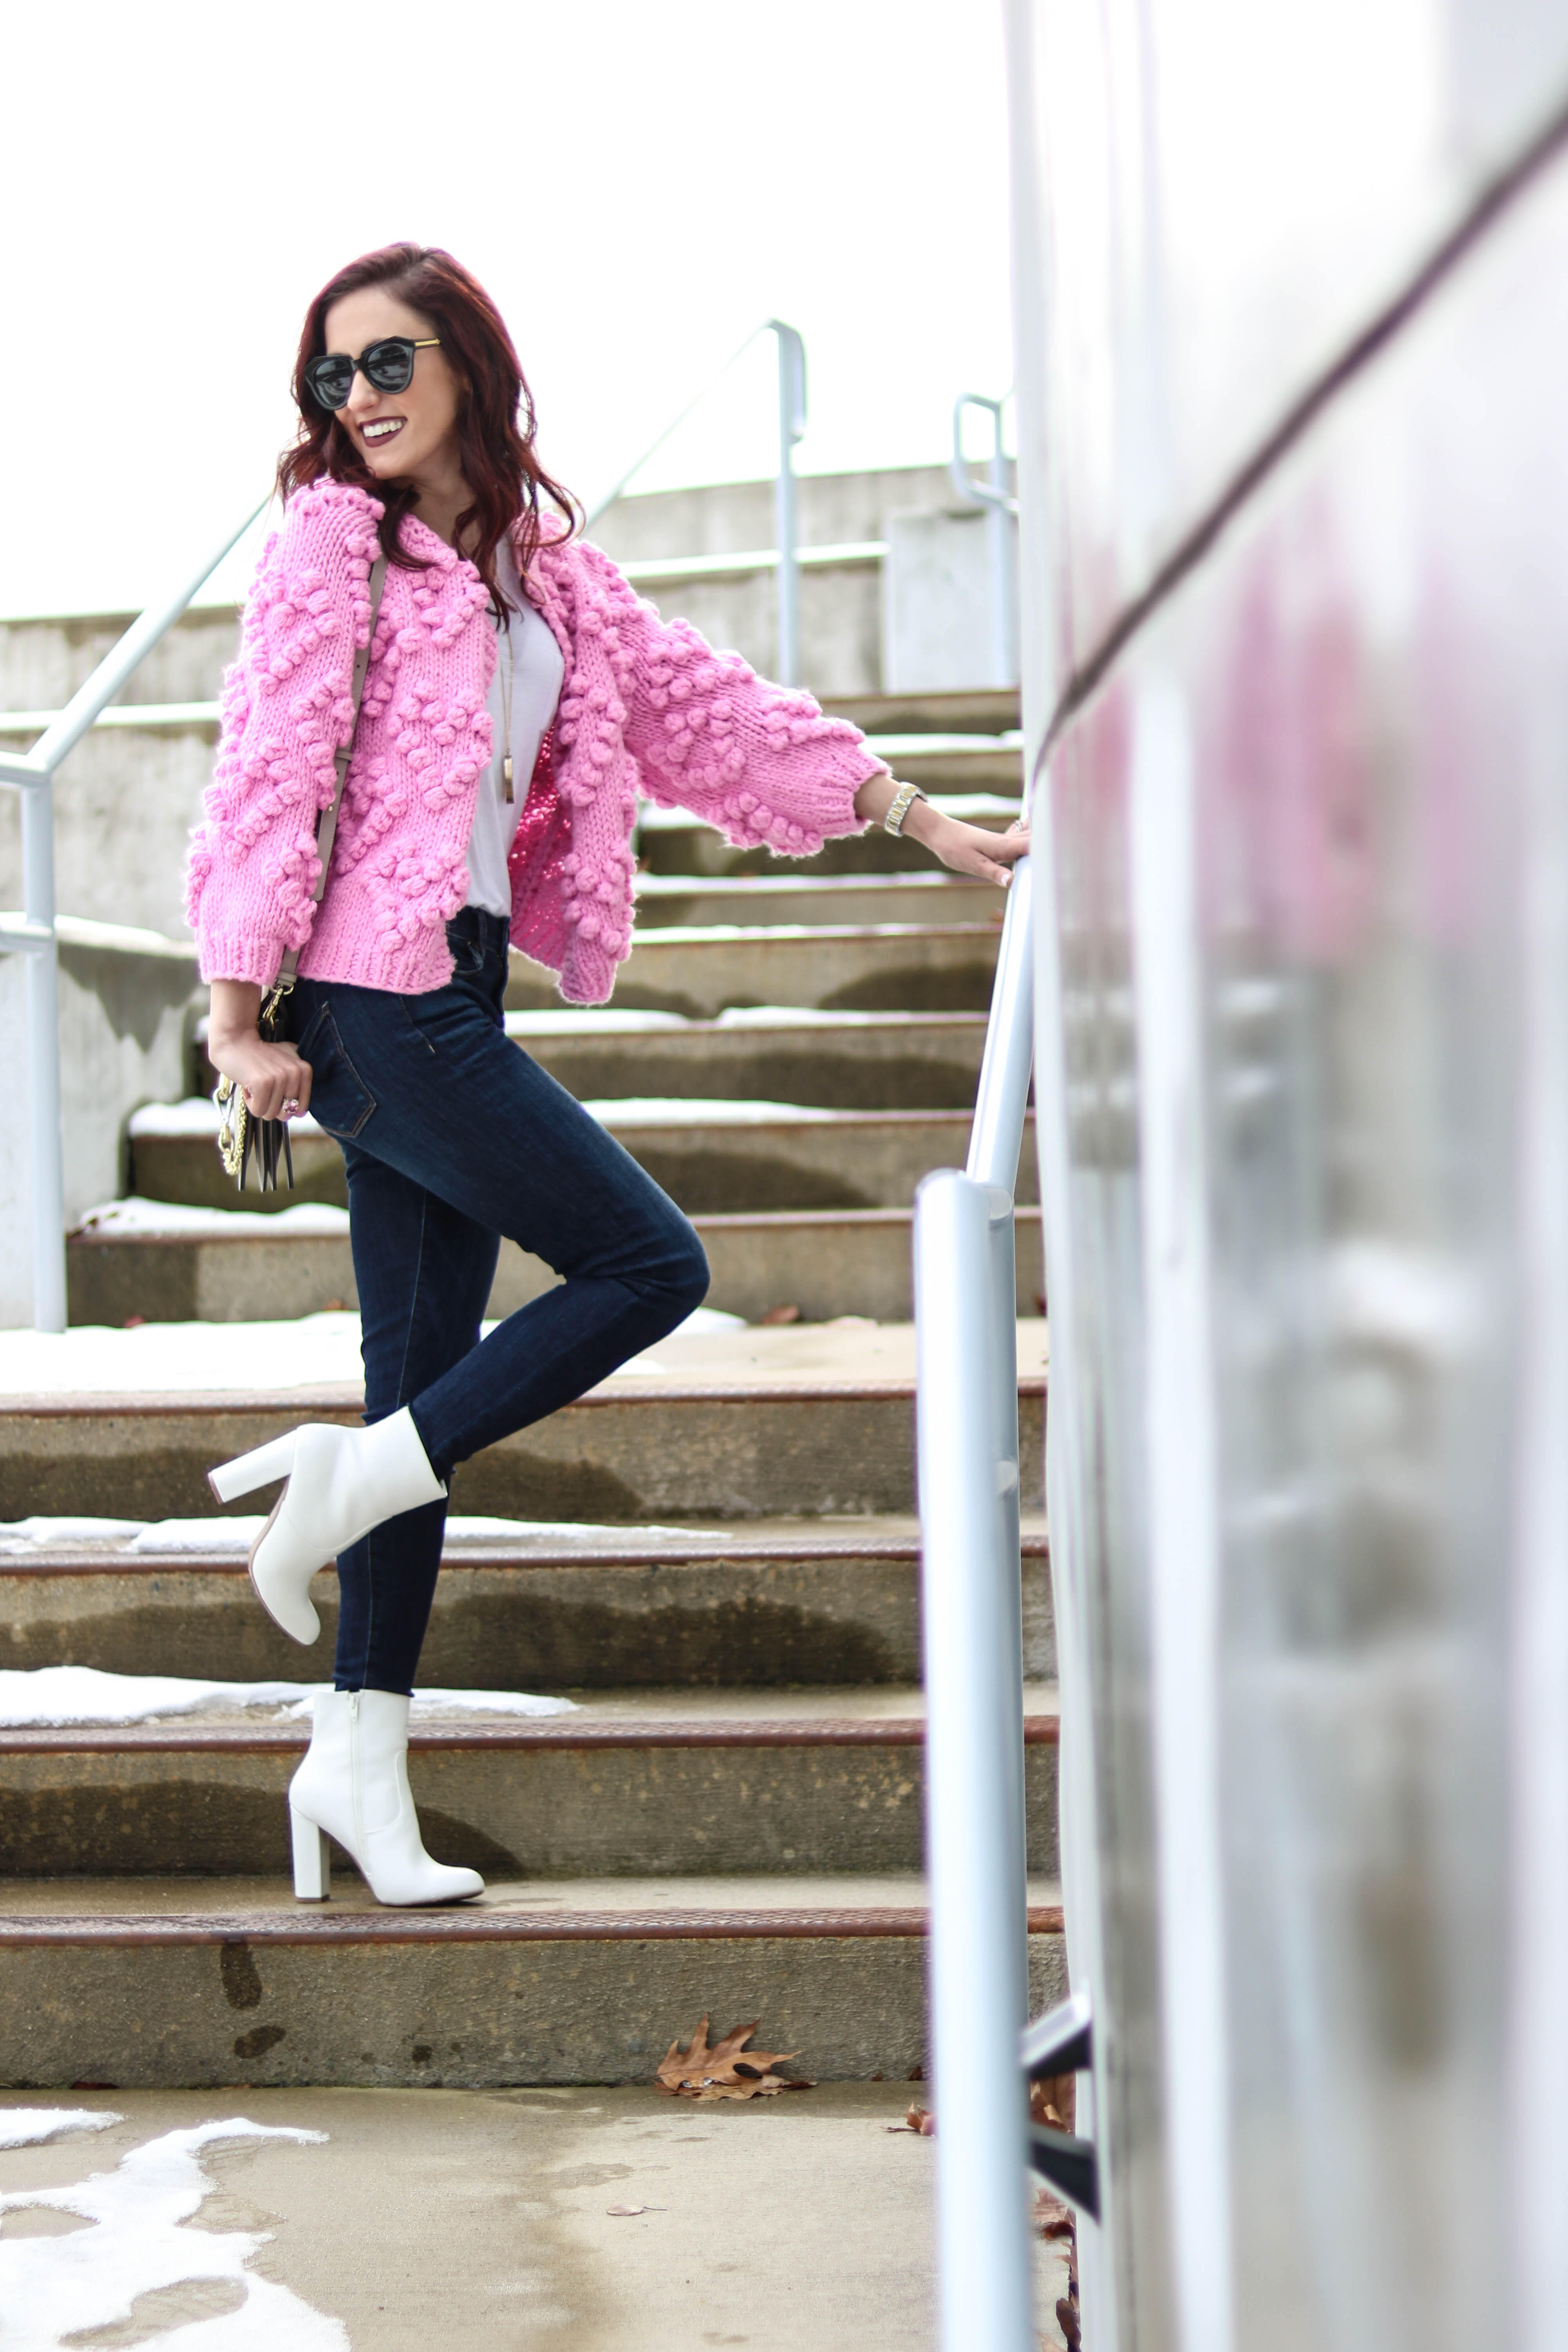 Winter POWER OUTFIT + Q1 Playlist! - Cute winter outfit on Coming Up Roses